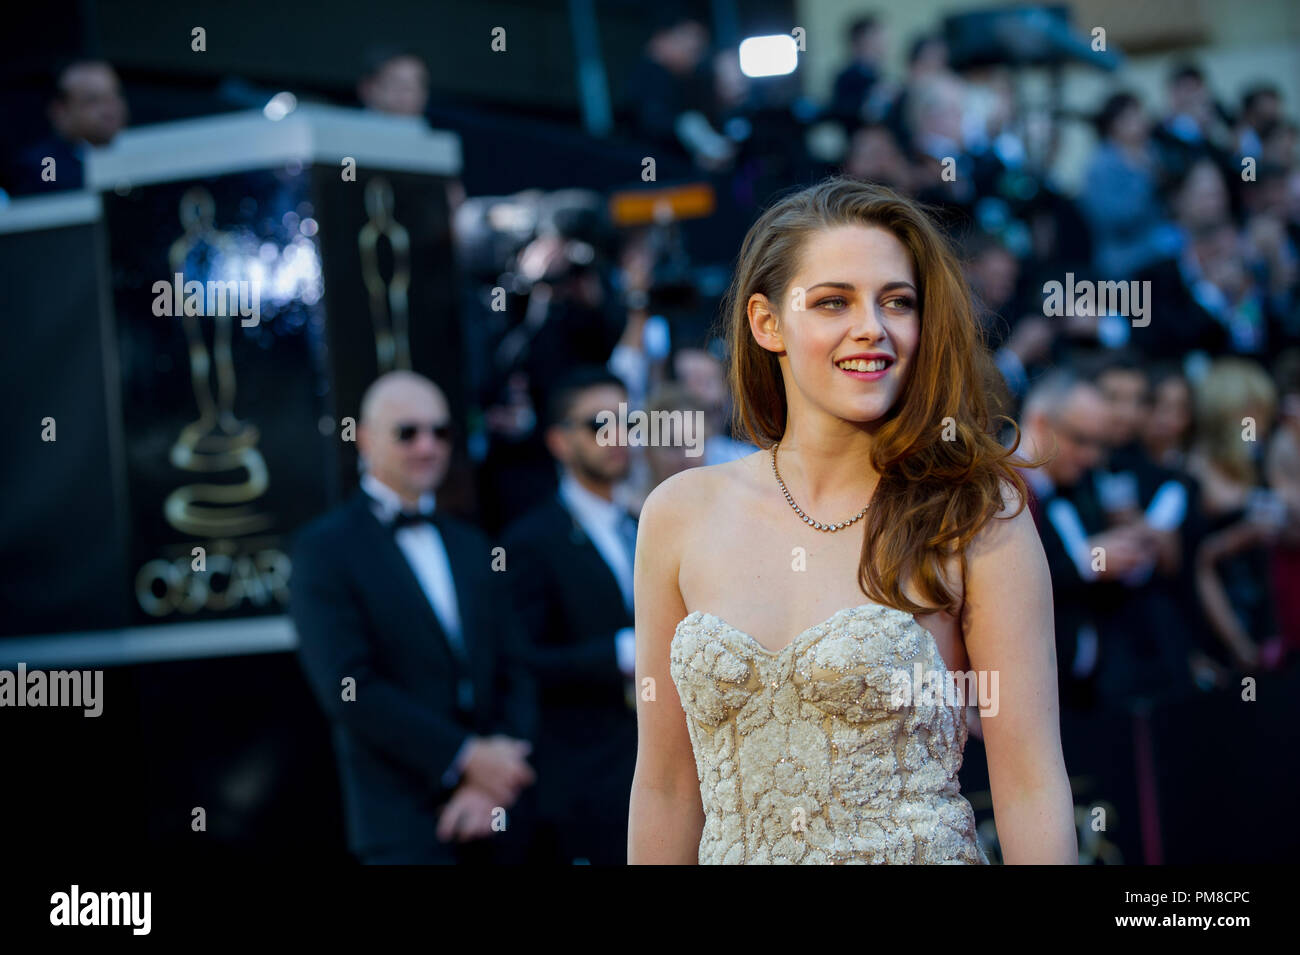 Actress Kristen Stewart arrives for The Oscars® at the Dolby® Theatre in Hollywood, CA February 24, 2013. - Stock Image